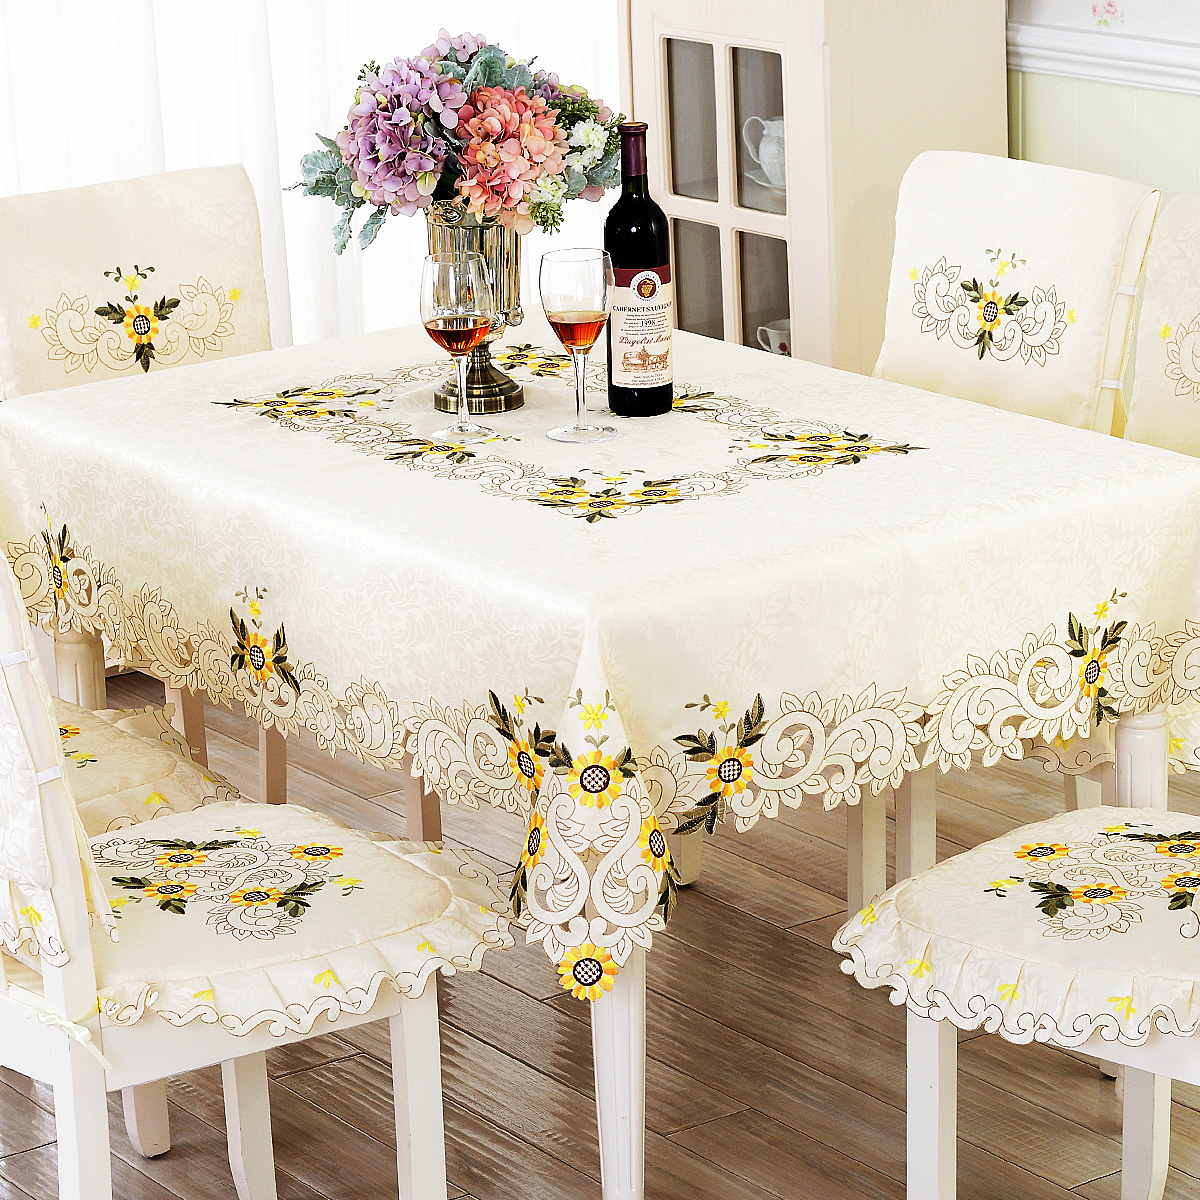 Wedding Chair Alibaba Soft Toddler Chairs Europe Embroidery Table Cloth Sunflower Lace Dinner